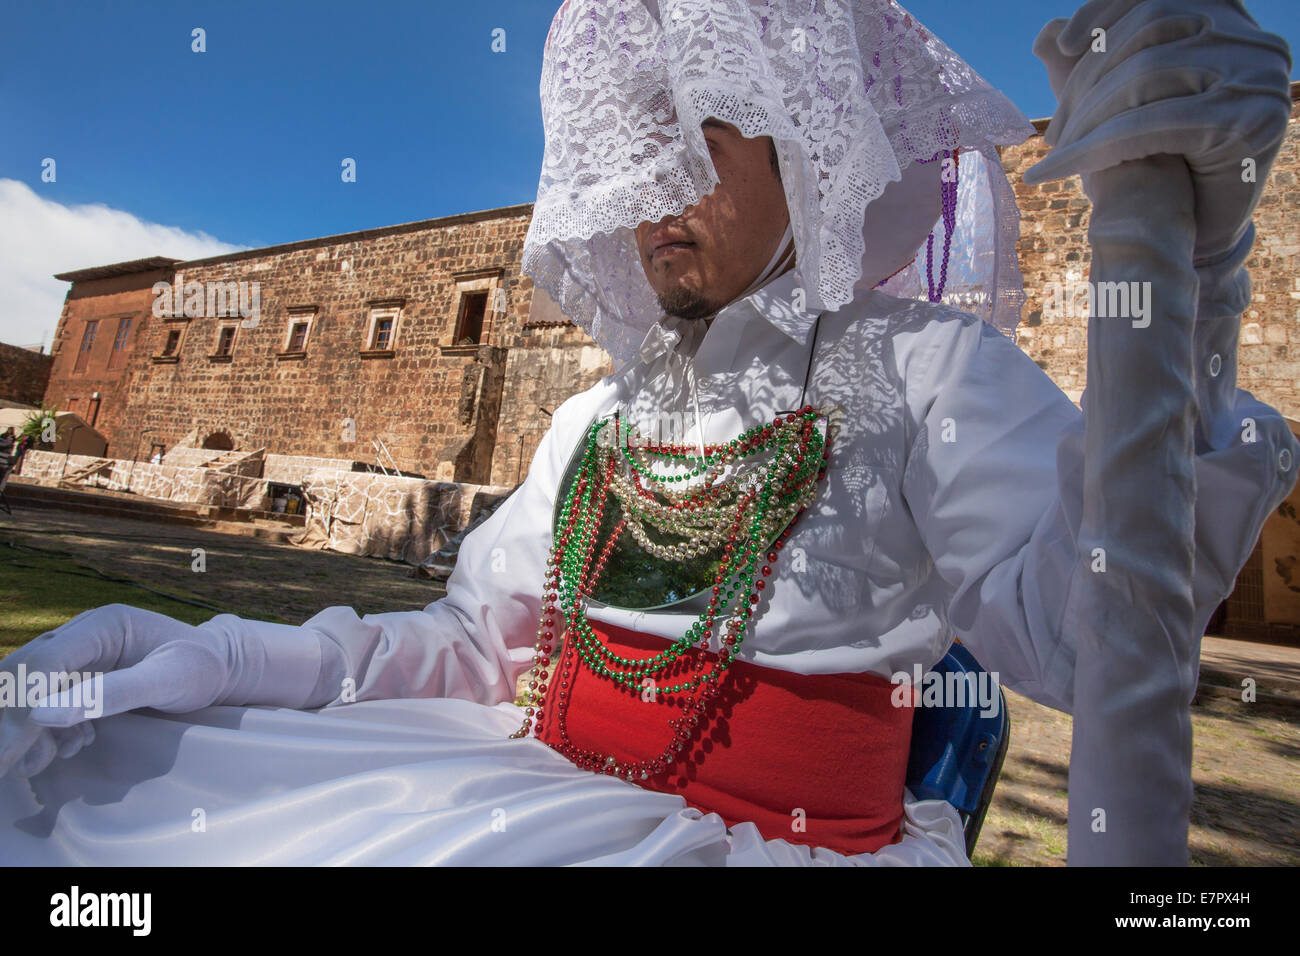 The character of the White Centurion during the Passion Play in Tzintzuntzan, Michoacan, Mexico. Stock Photo